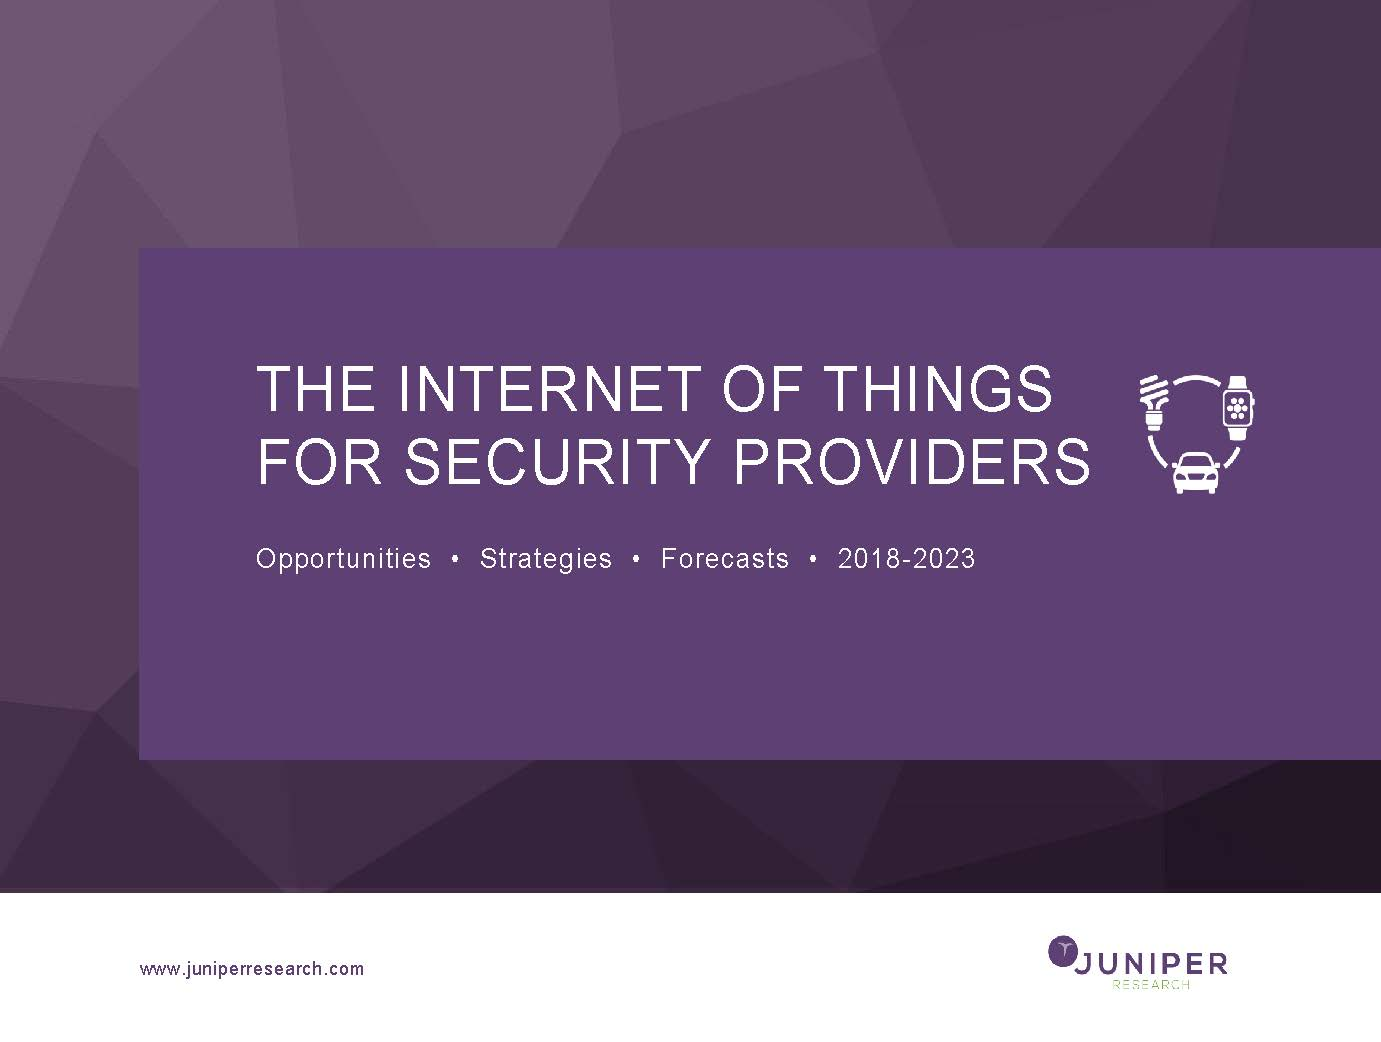 The Internet of Things for Security Providers